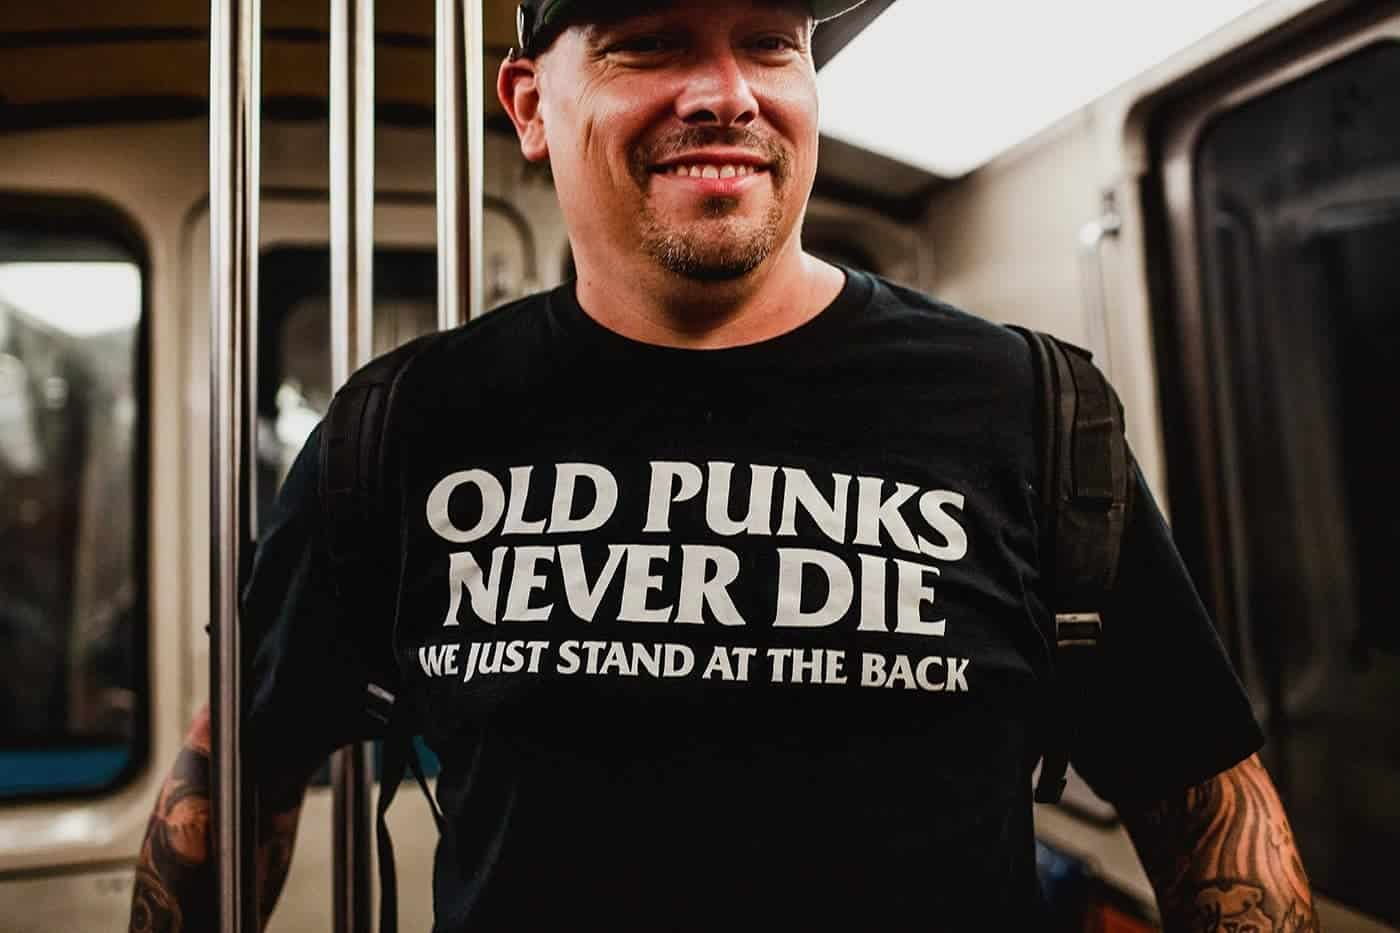 old punks never die shirt